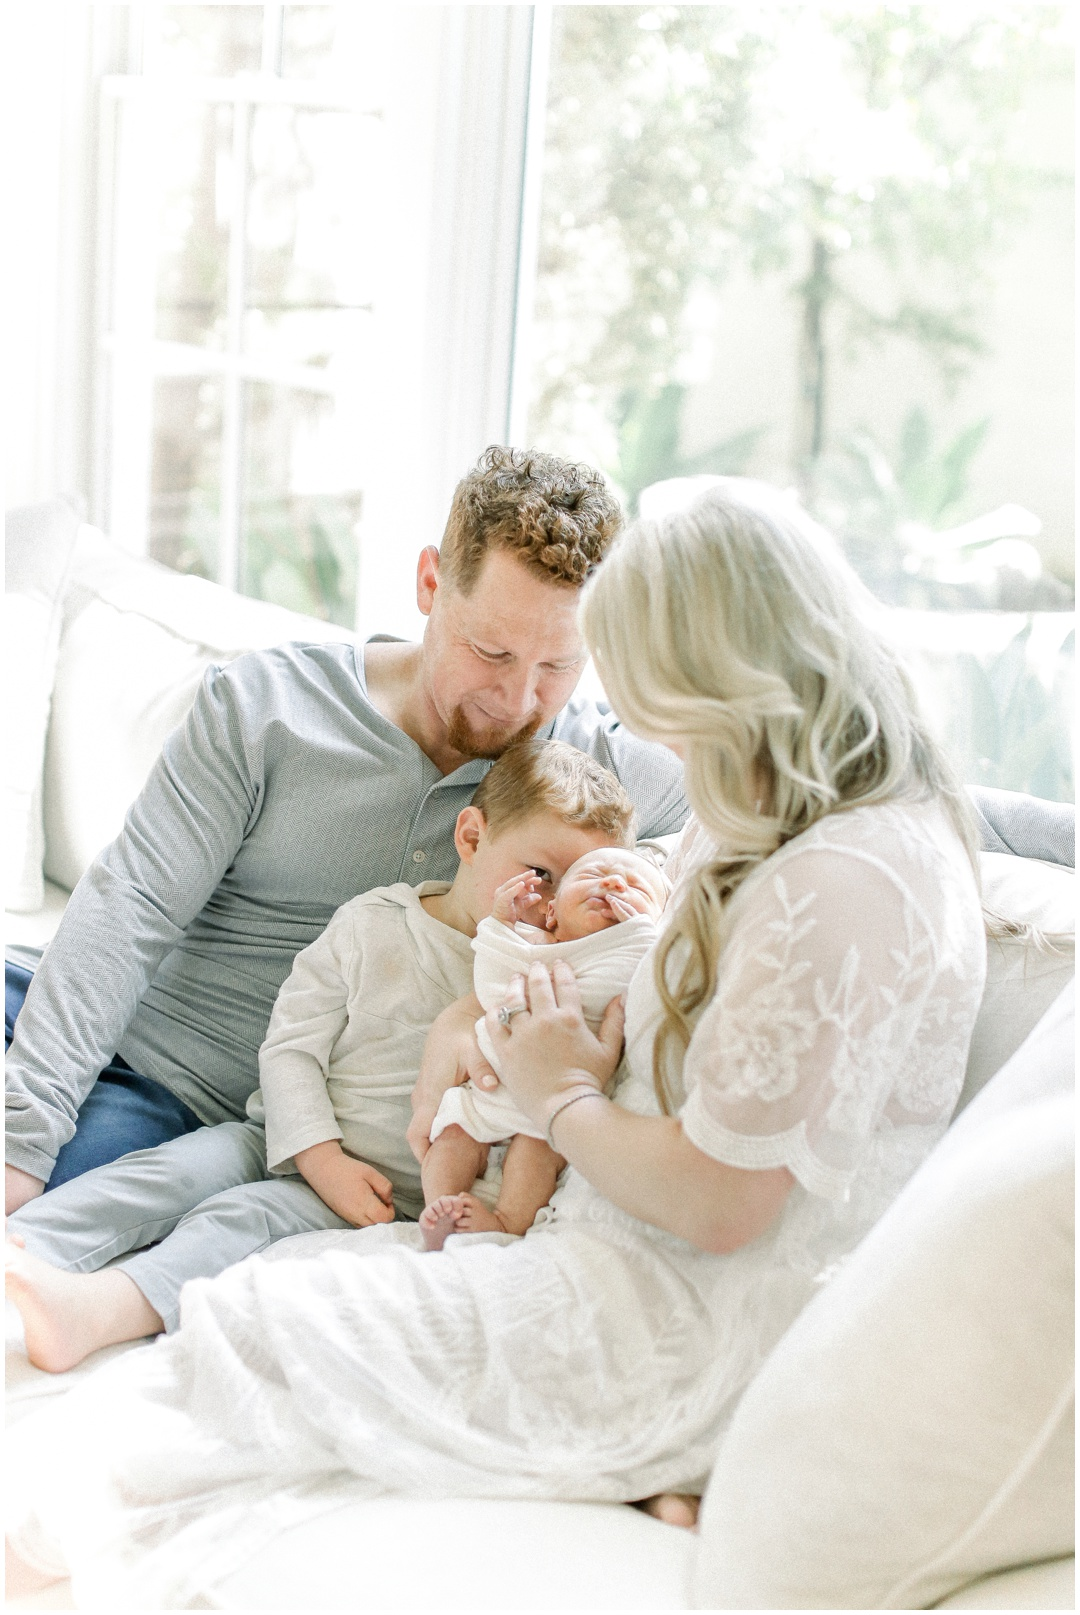 Newport_Beach_Newborn_Light_Airy_Natural_Photographer_Newport_Beach_Photographer_Orange_County_Family_Photographer_Cori_Kleckner_Photography_Newport_Beach_Photographer_newborn_kole_calhoun56_kole_calhoun_Jennifer_Calhoun_Knox_Calhoun_3812.jpg